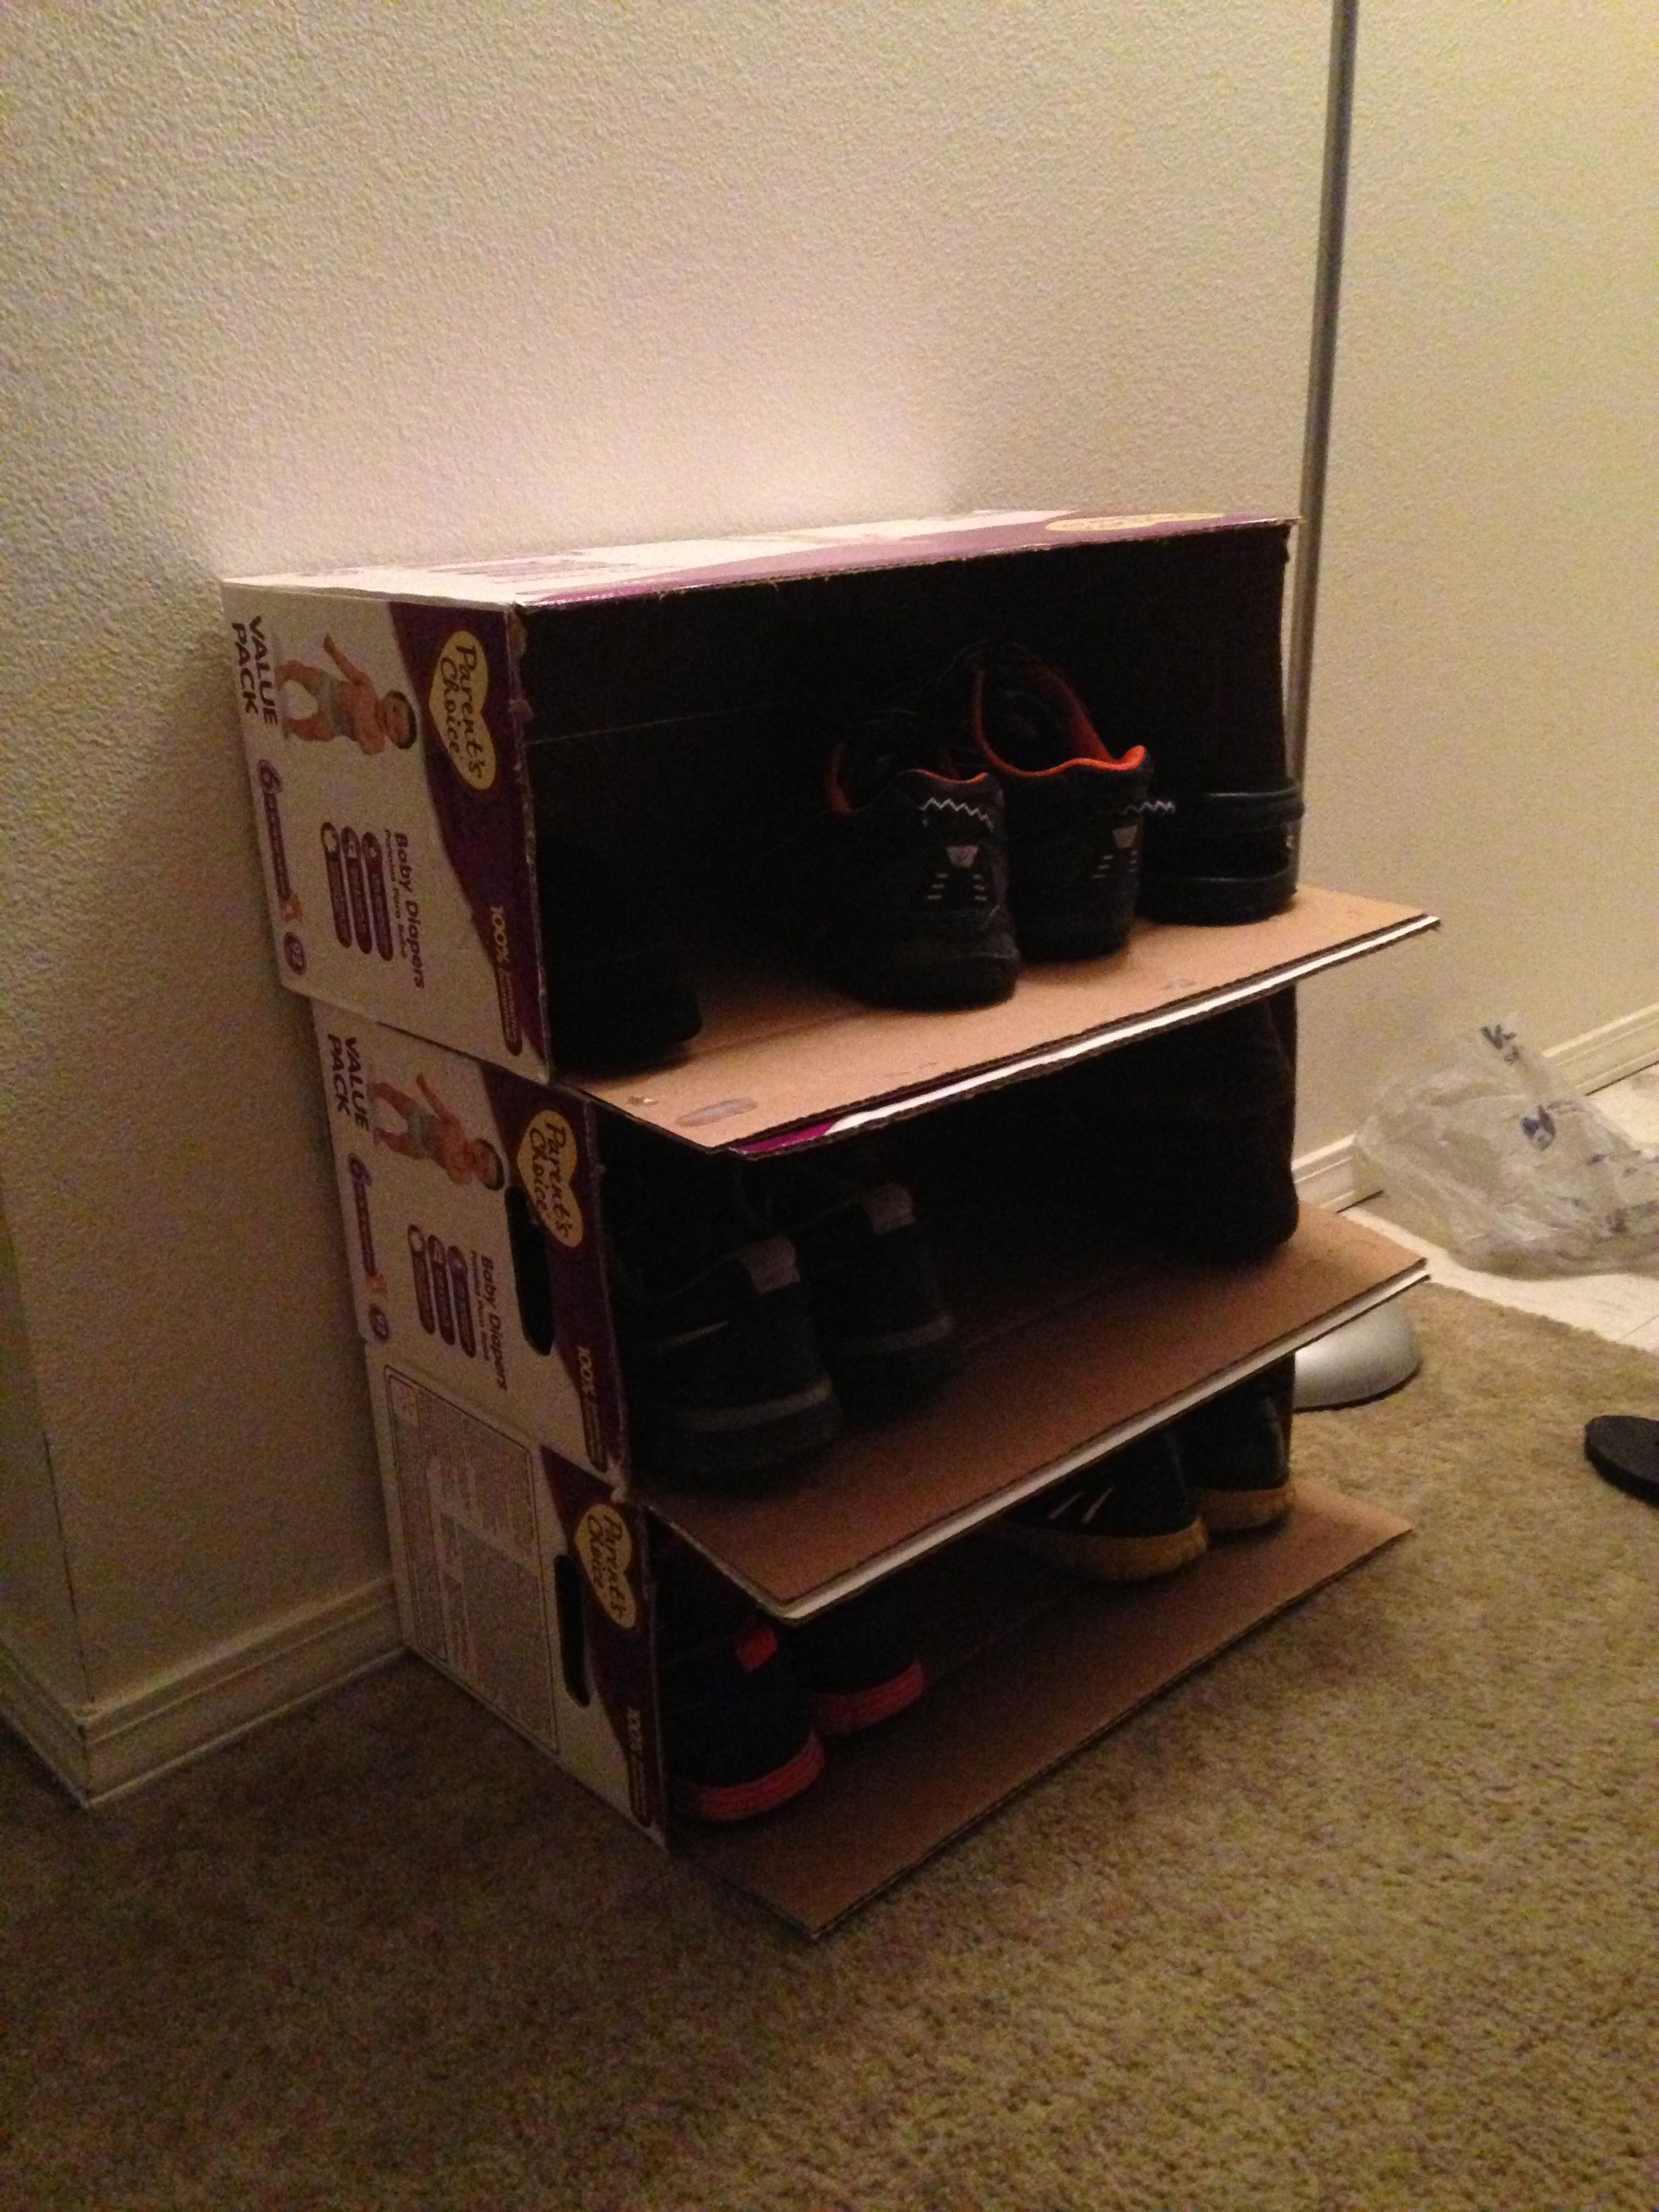 Möbel Aus Pappe Basteln Diaper Boxes Turned Into A Shoe Bookshelf Cover With